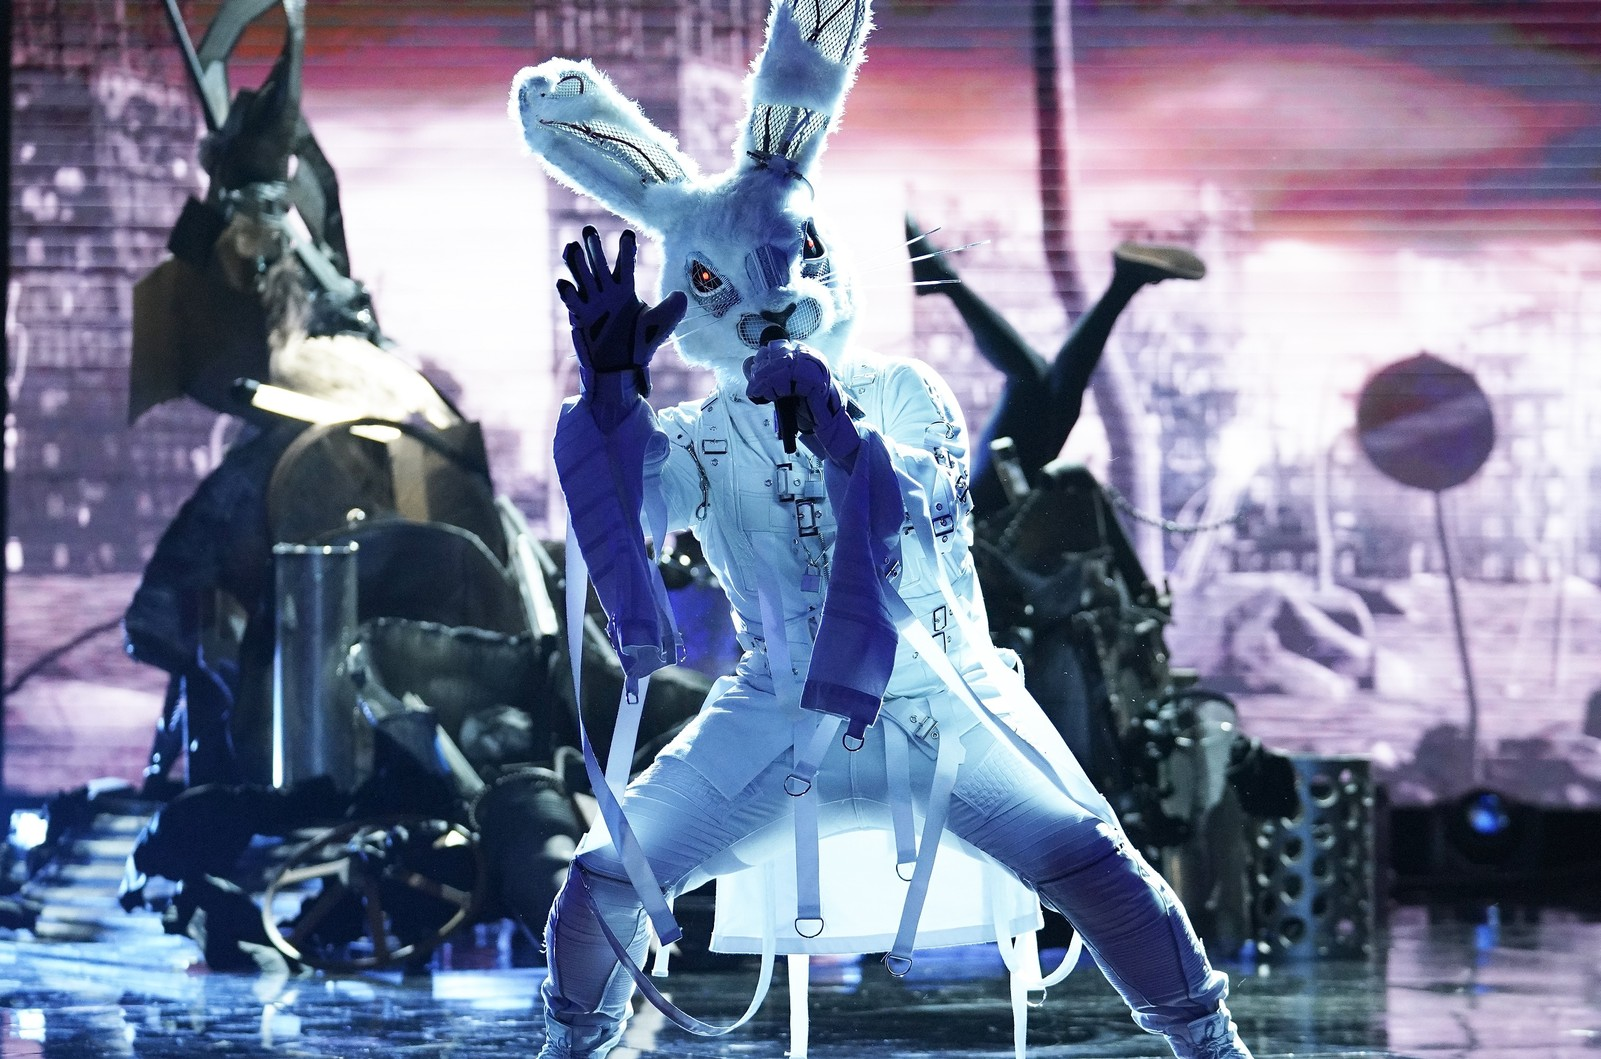 Rabbit in 'The Masked Singer'